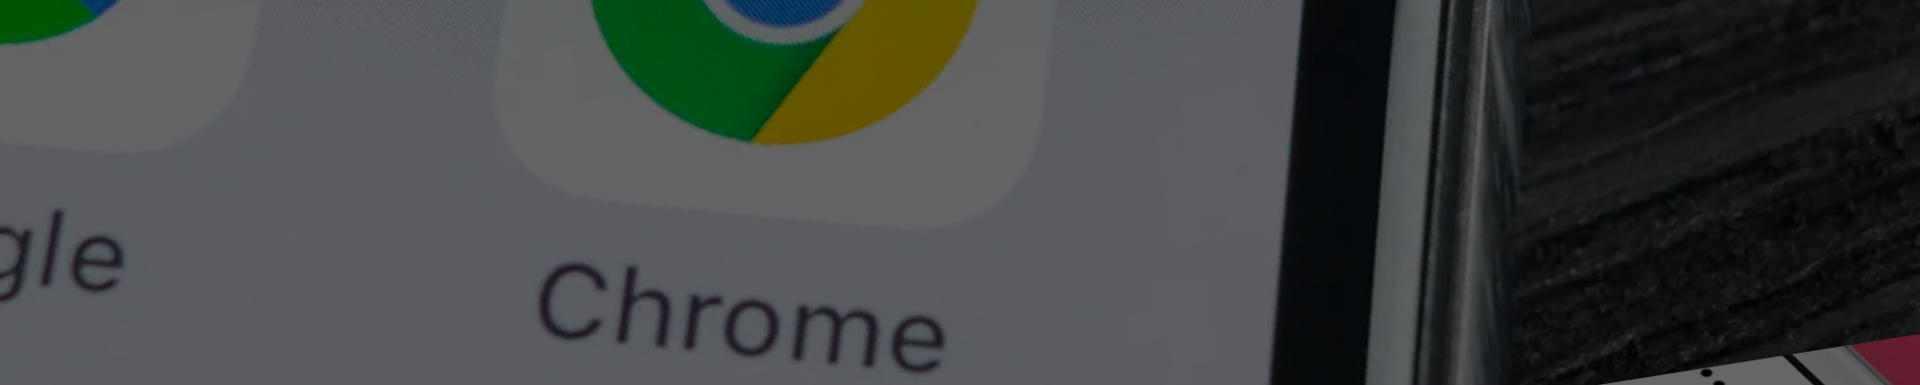 How Google Chrome's developer tools could change the way we use smartphone apps